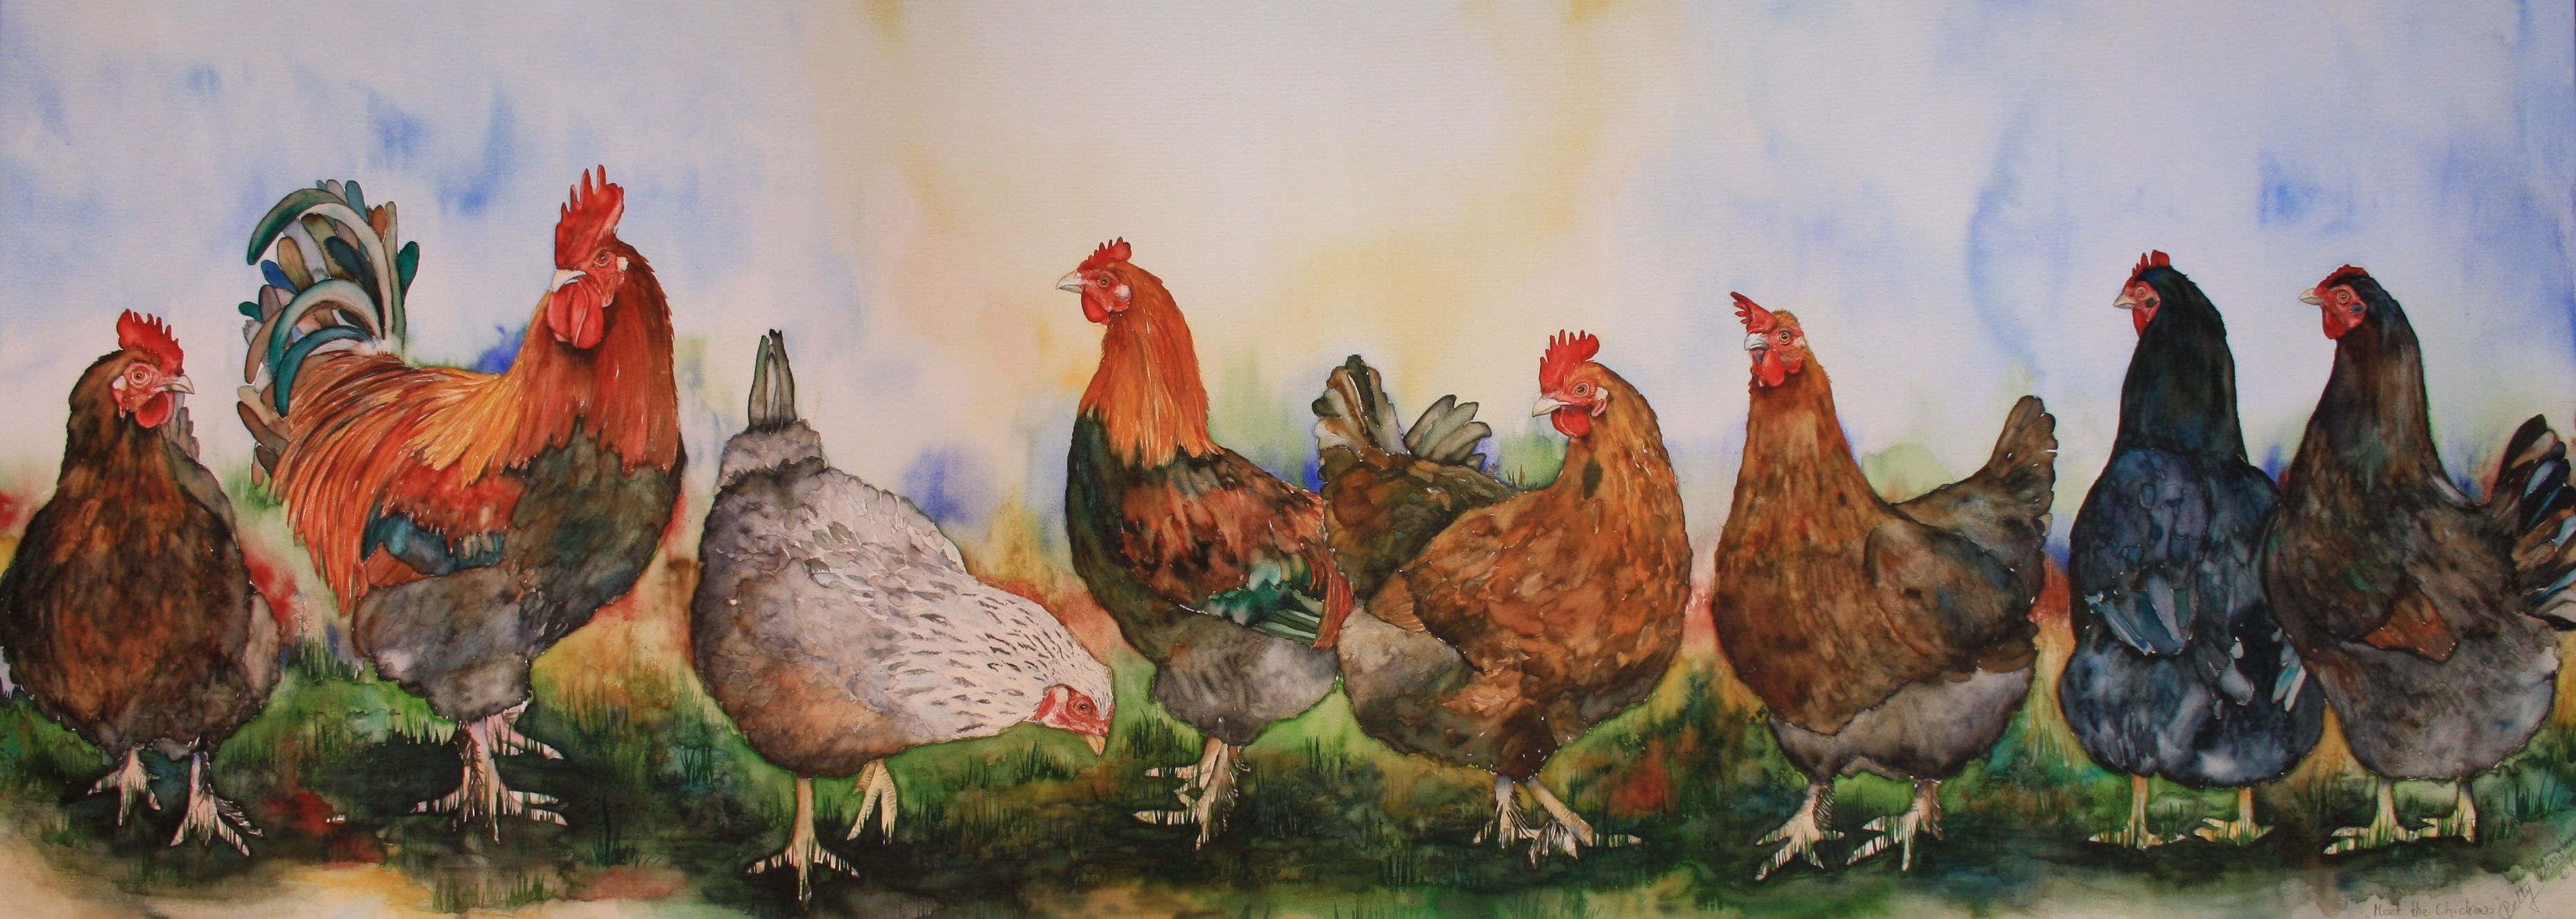 Meet the Chickens!  Dessin, Peinture, Art